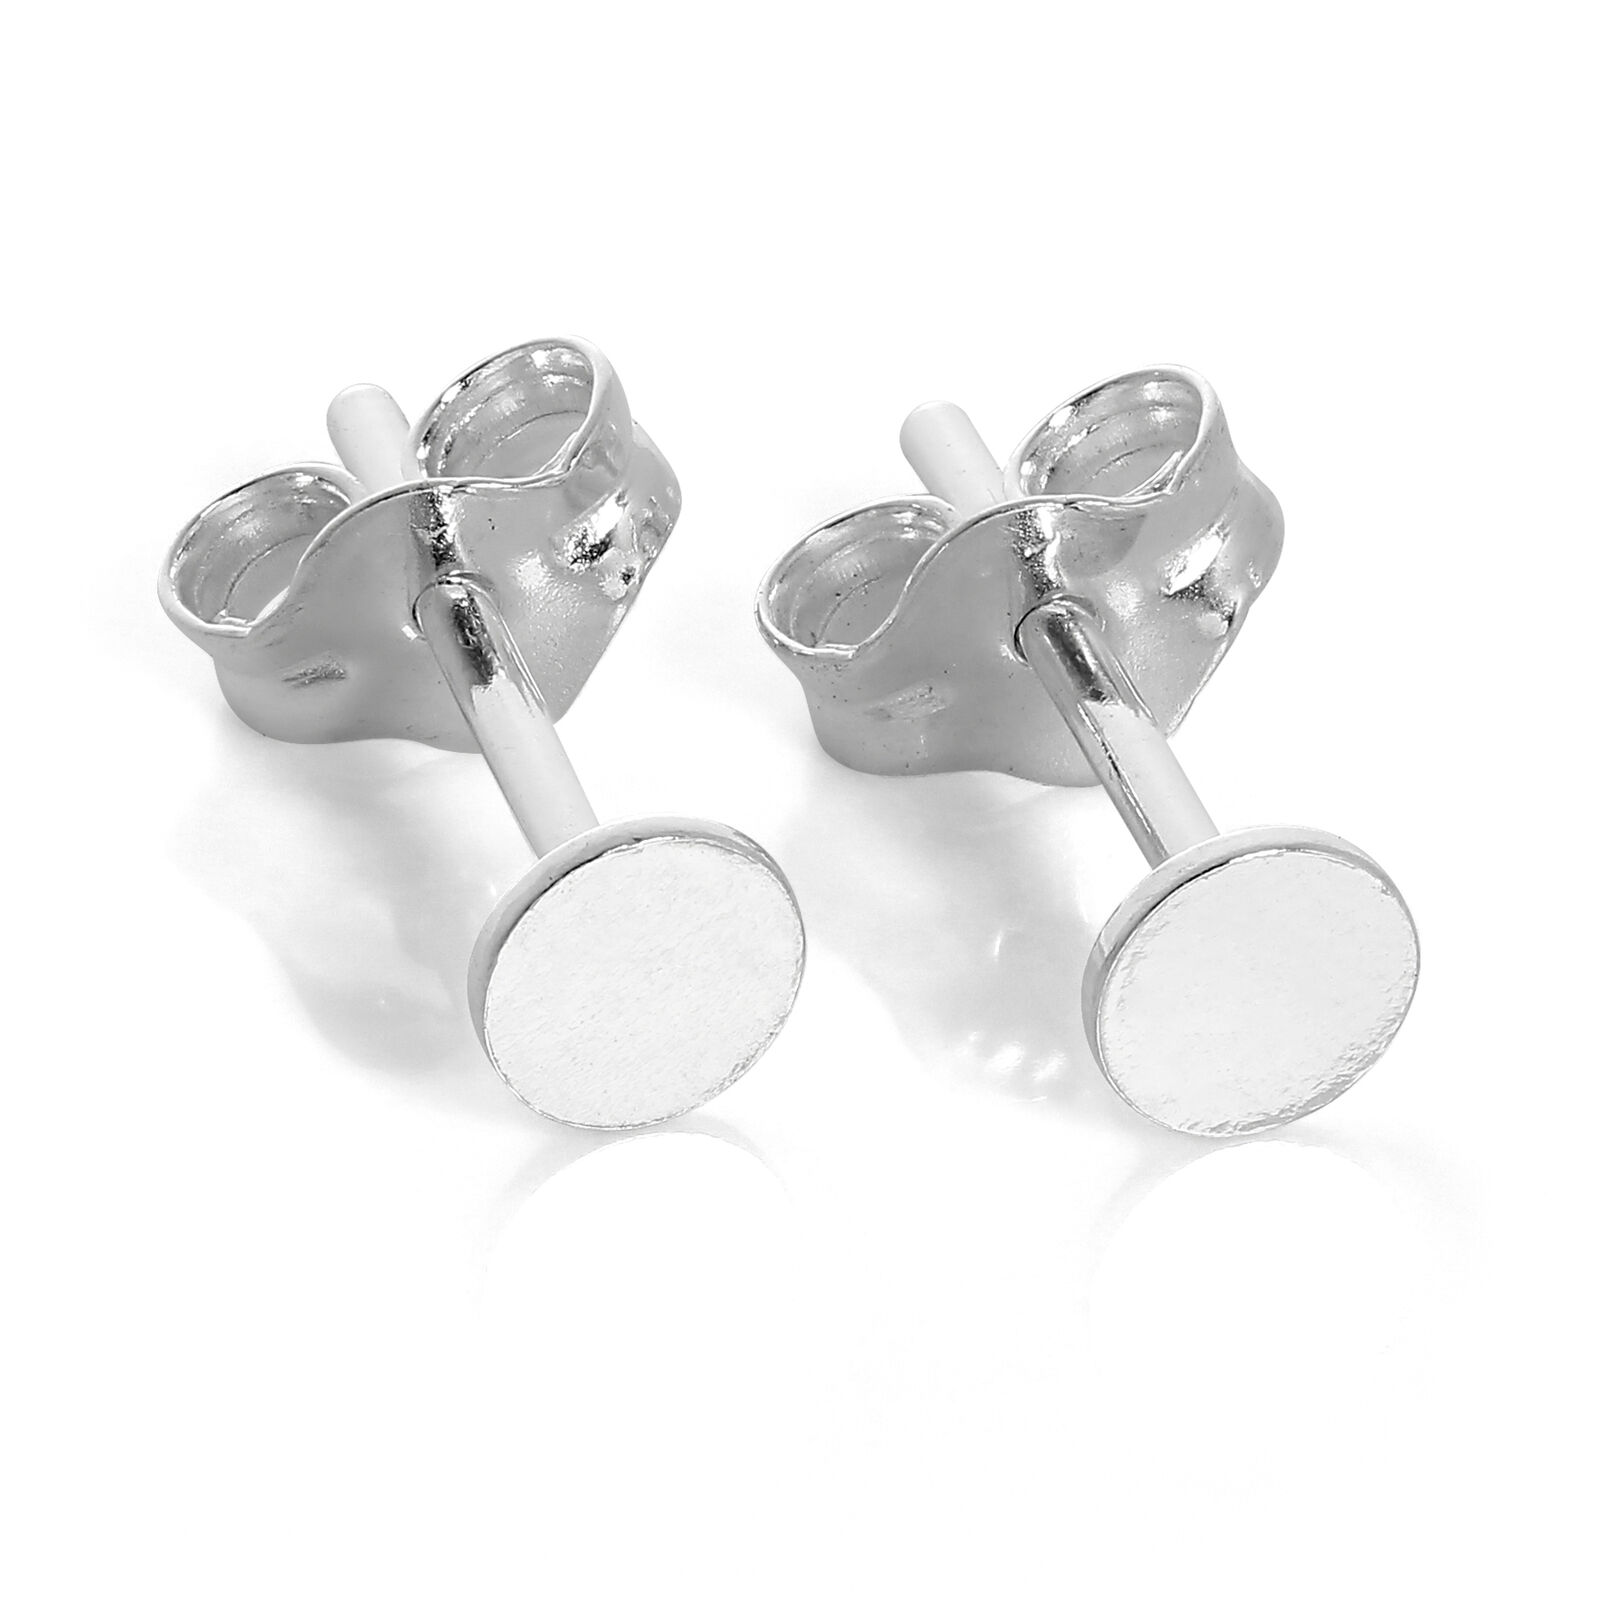 a181edc46 Details about 925 Sterling Silver Plain Flat 3mm Round Disc Stud Earrings  Simple Studs